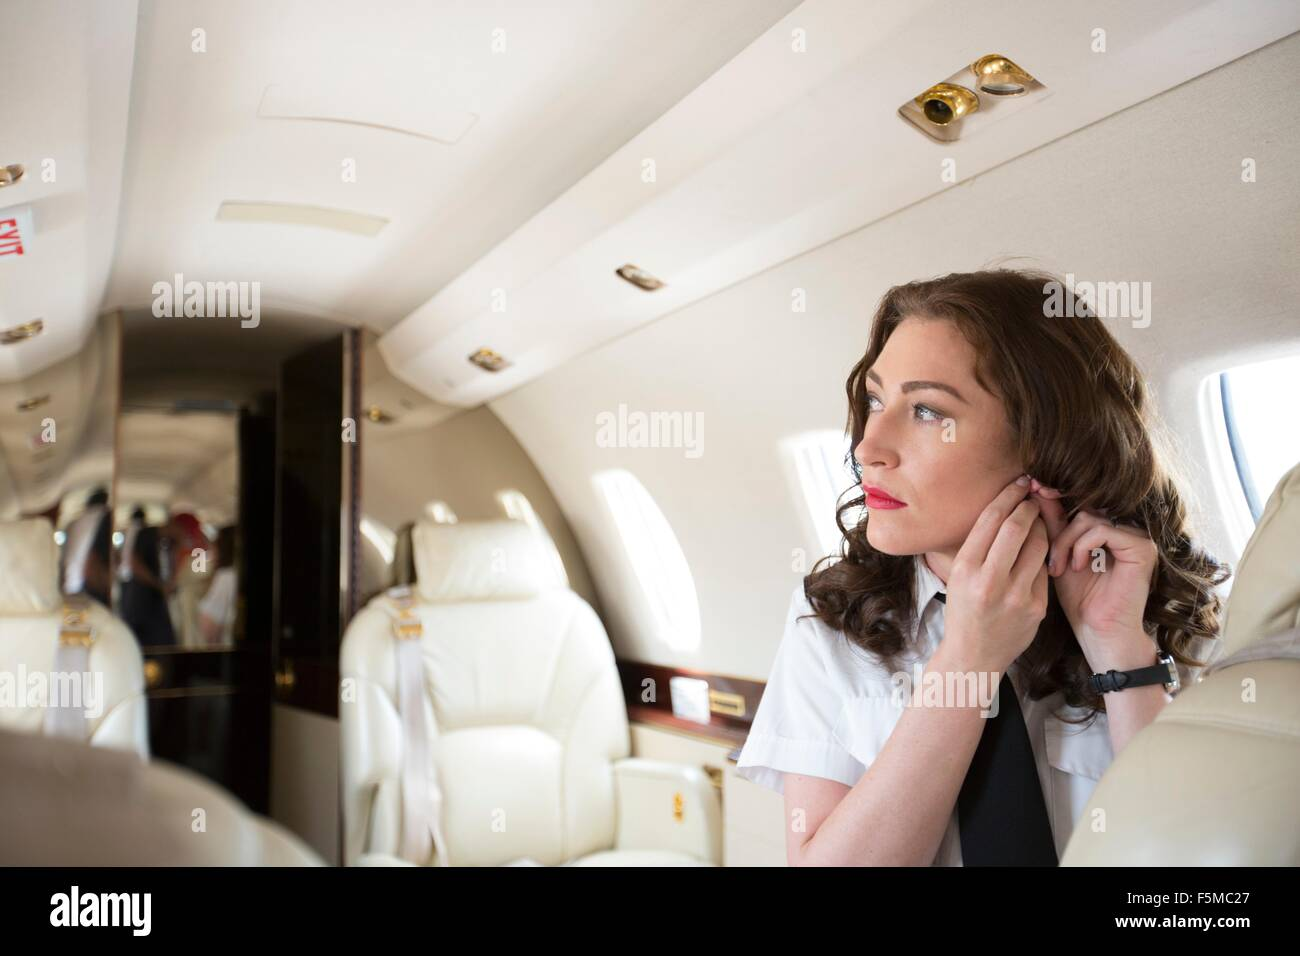 Female flight attendant putting on earring in cabin of private jet - Stock Image